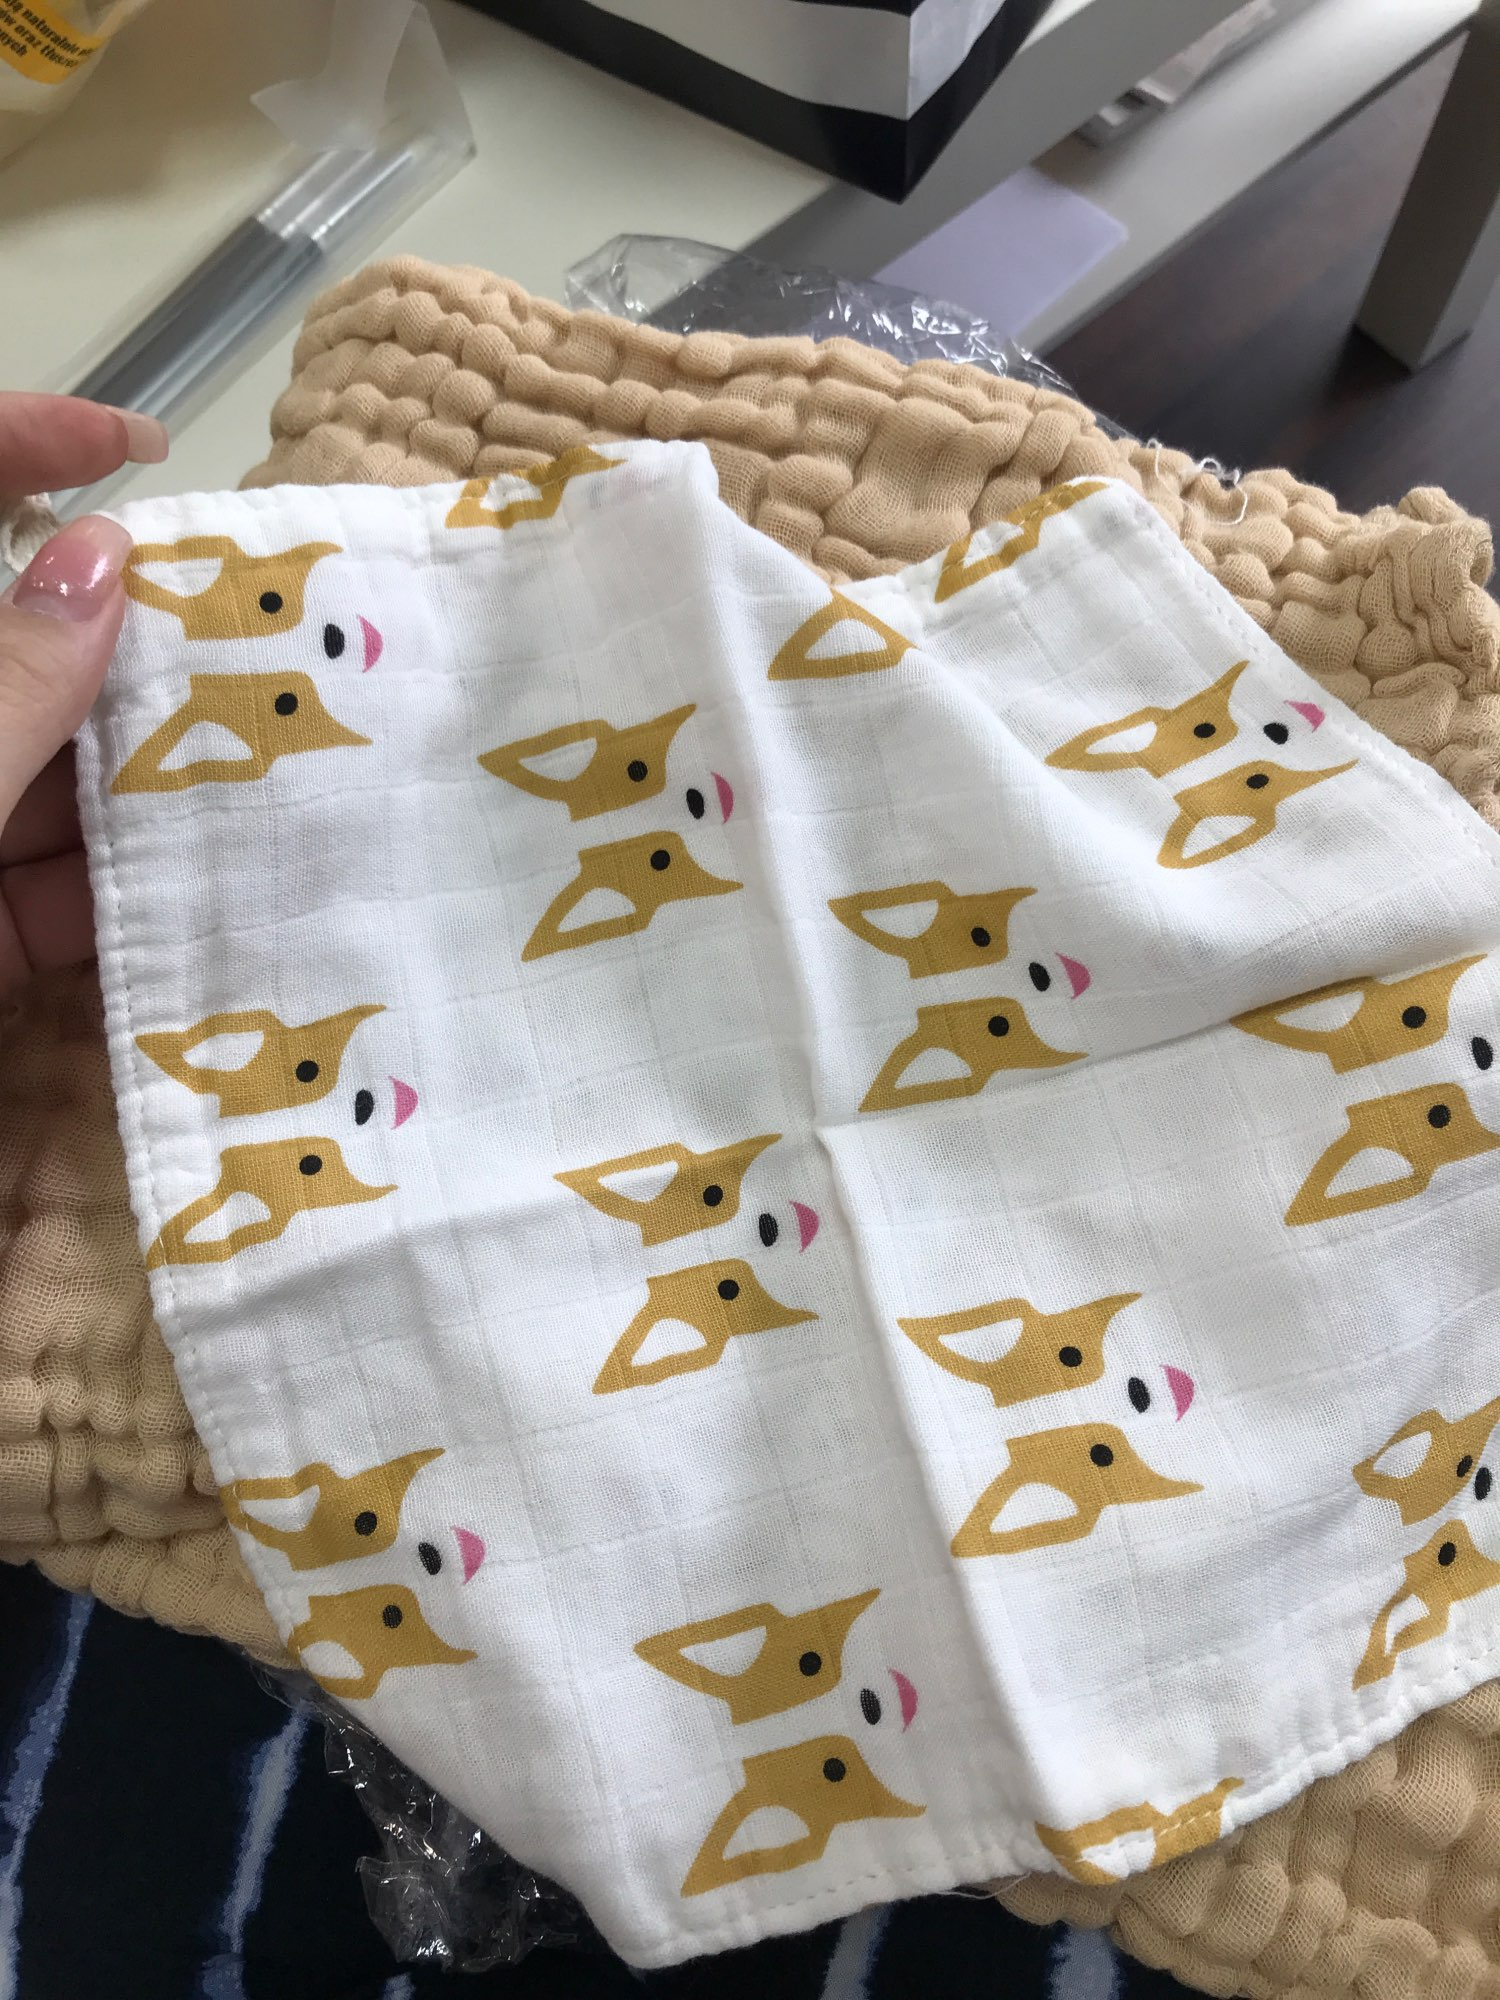 6 Layers Bamboo Cotton Baby Receiving Blanket Infant Kids Swaddle Wrap Blanket Sleeping Warm Quilt Bed Cover Muslin Baby Blanket photo review